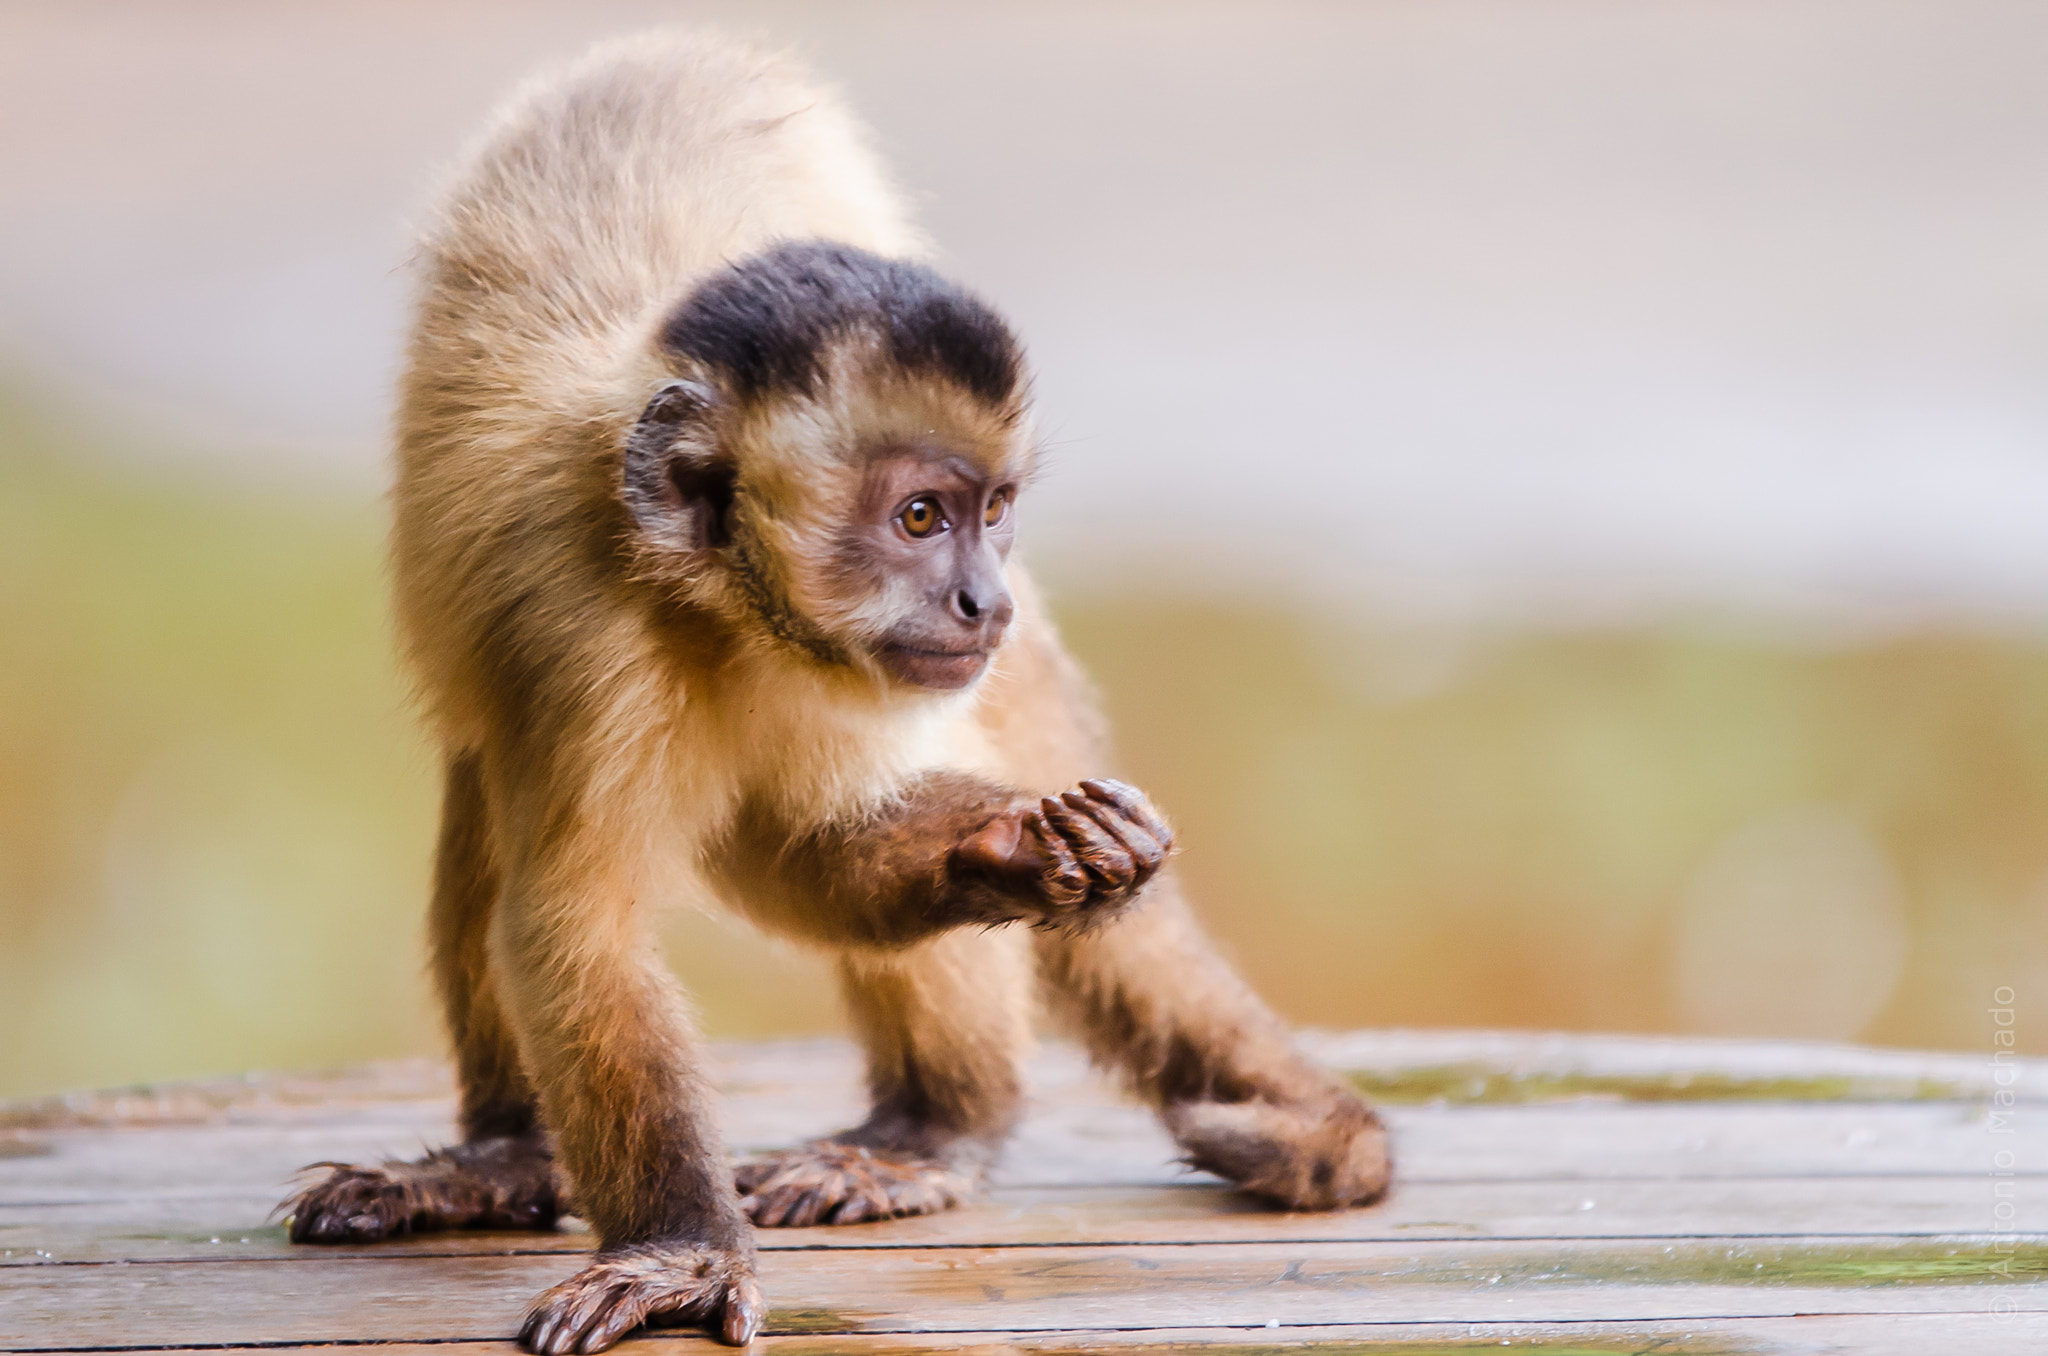 Photograph Monkey posing to my lens! by Antonio Machado on 500px